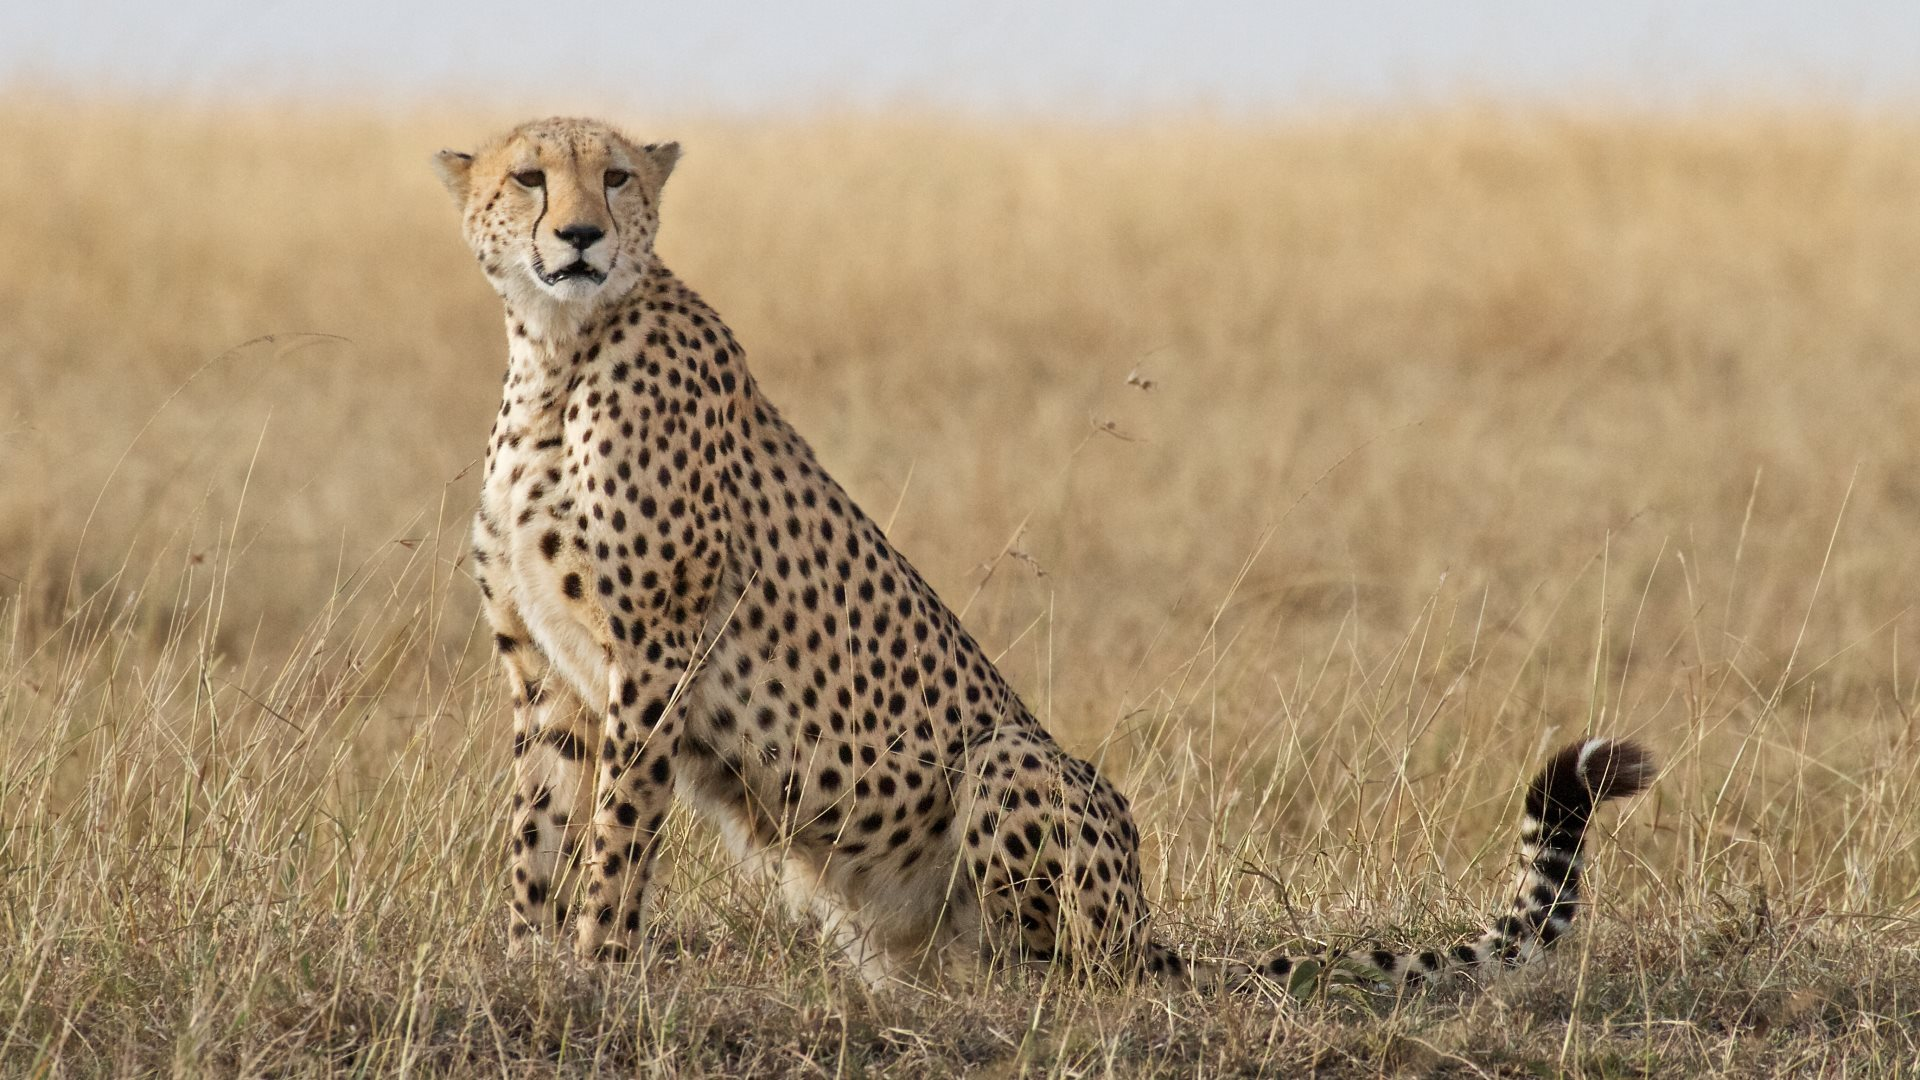 cheetah in the wild wallpapers in hd 4k and wide sizes